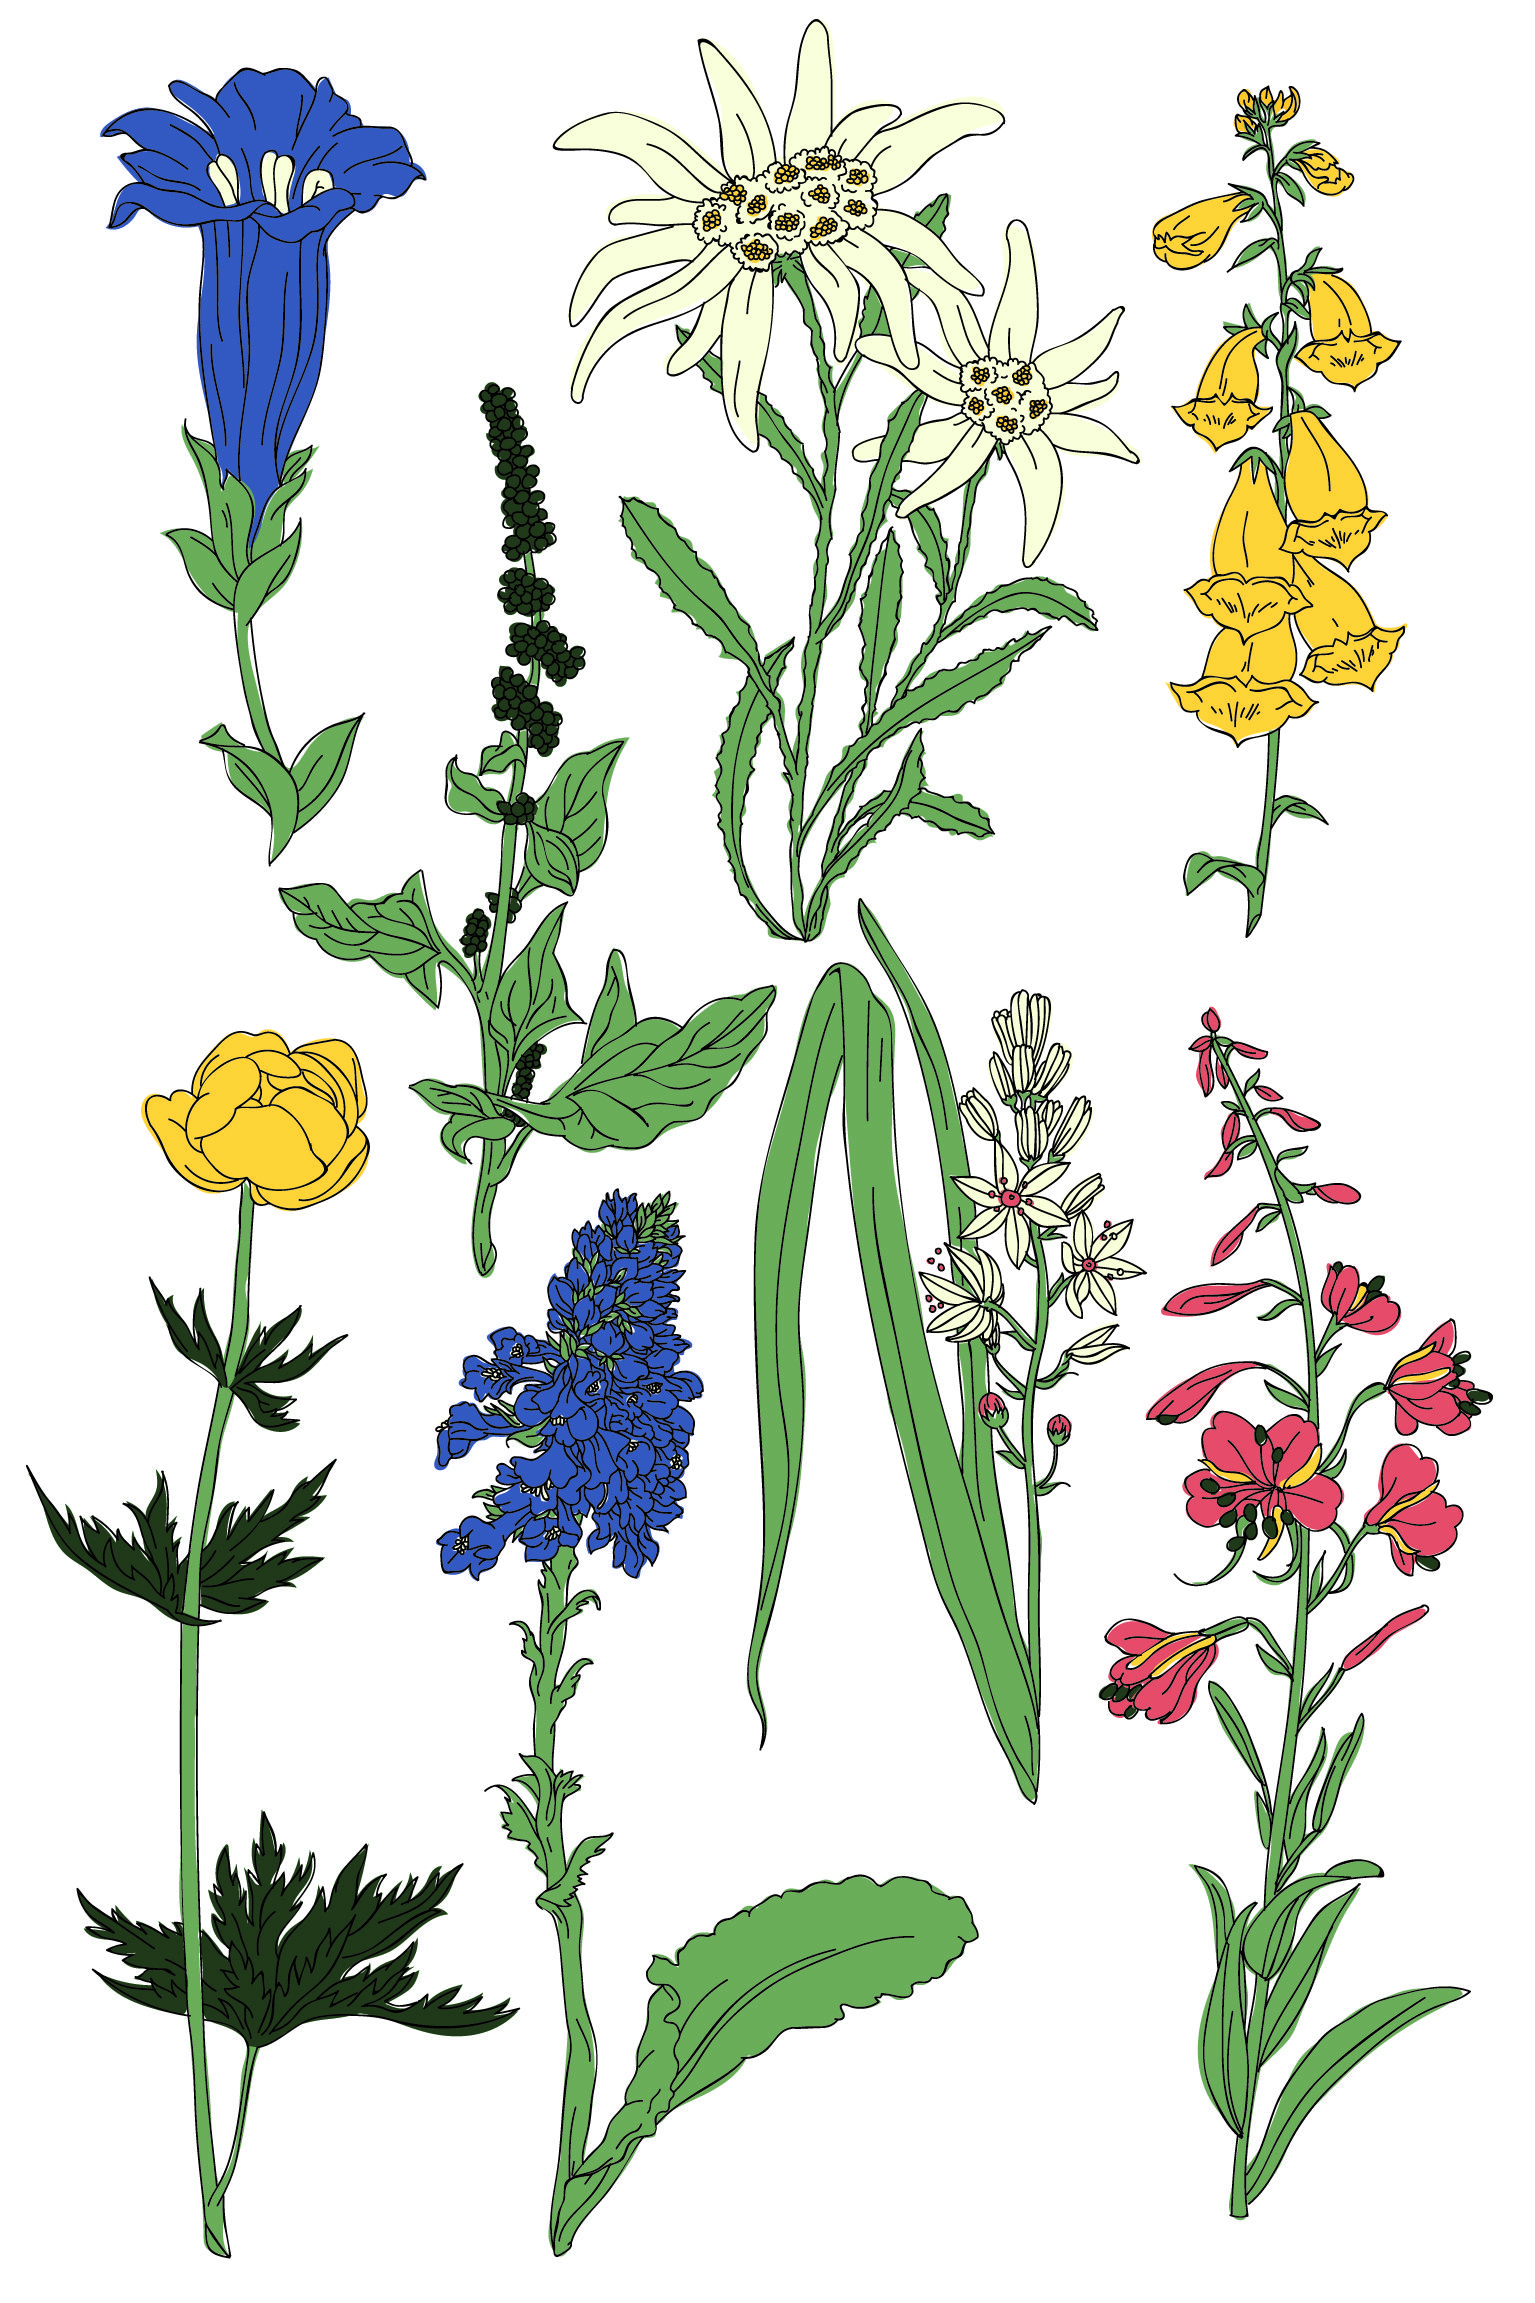 Illustration Vectoriel Flowers Herbier Edelweiss Alpes